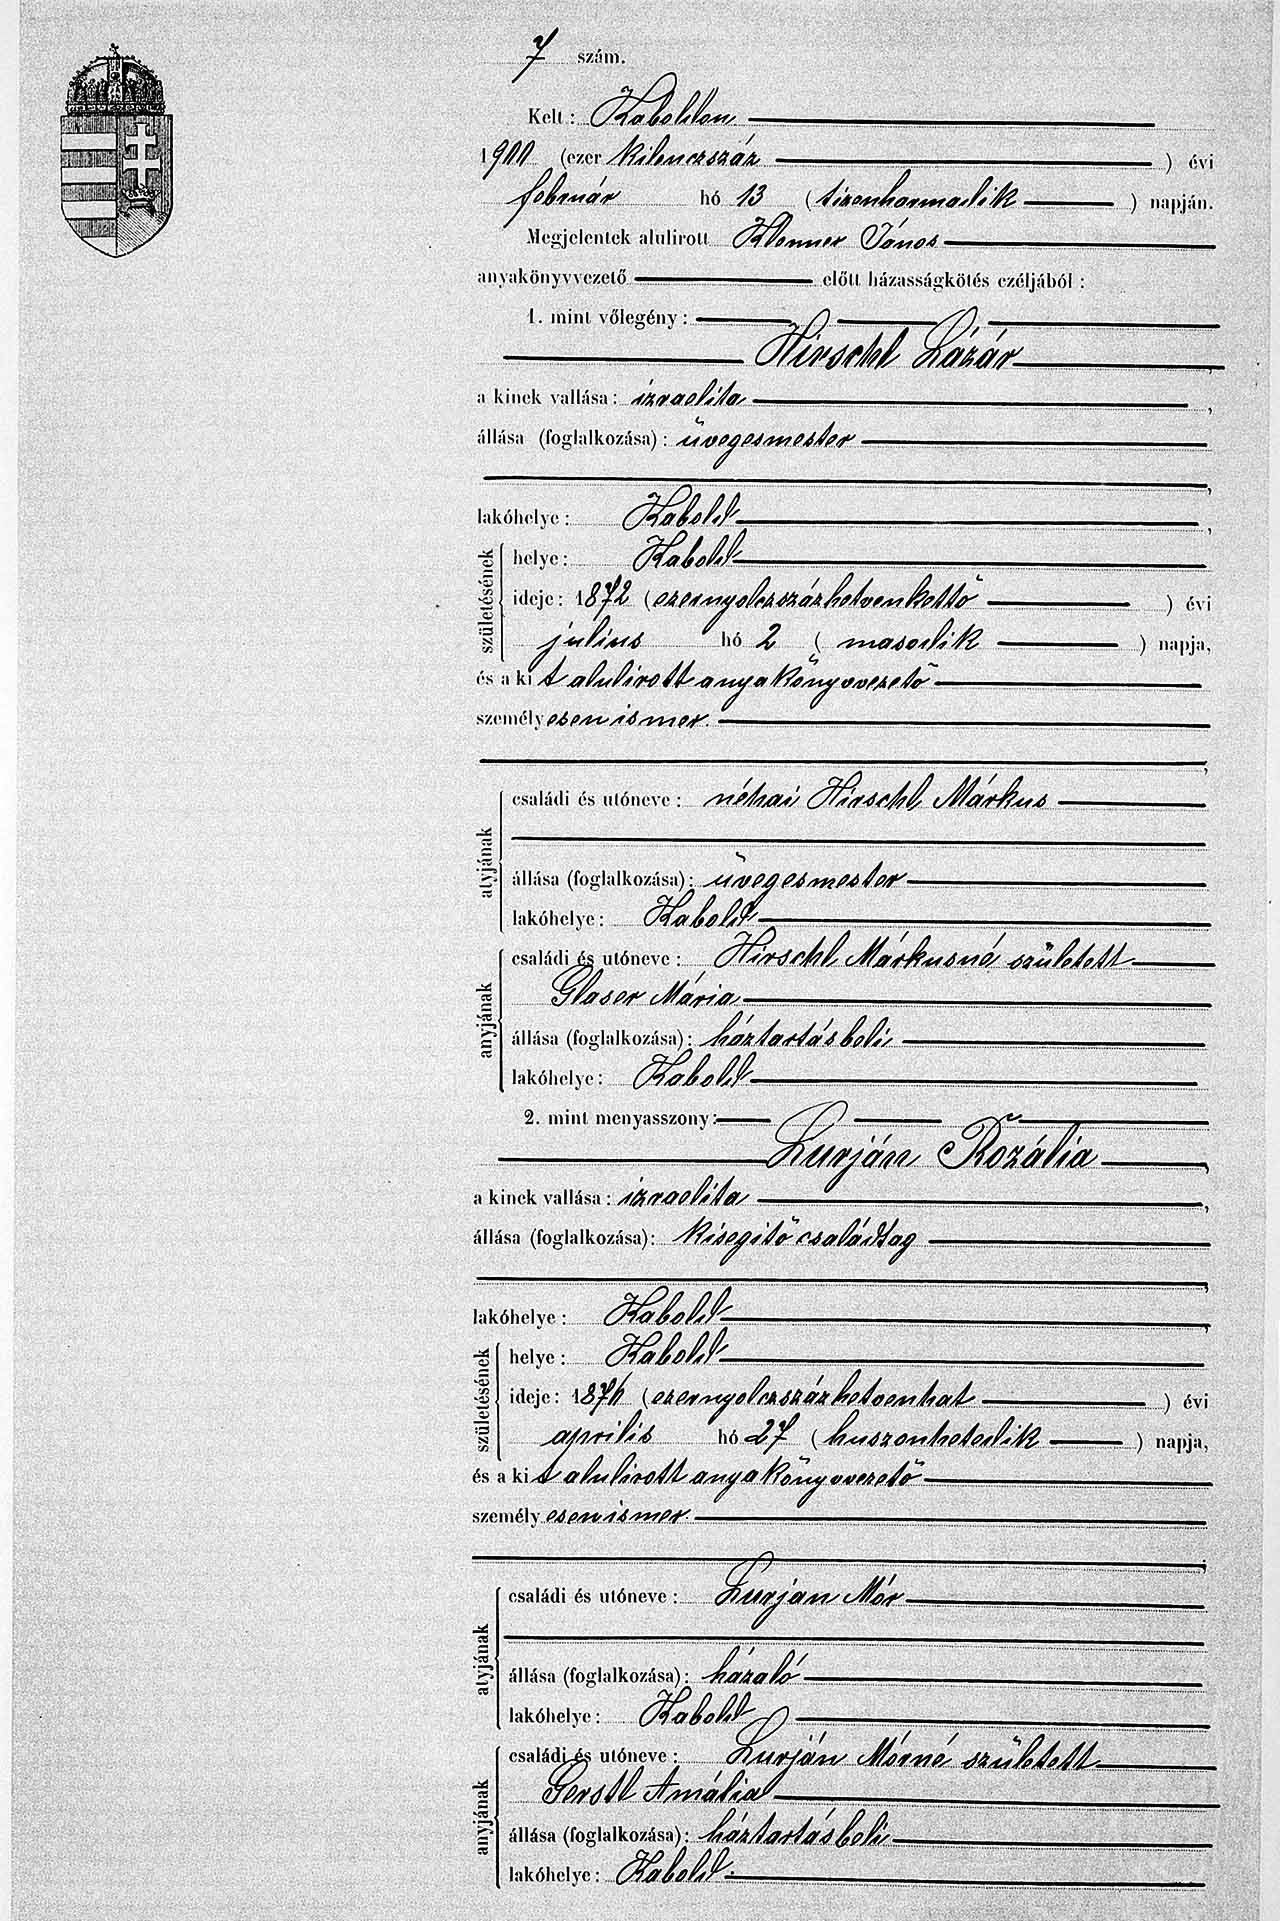 Marriage entry Rosalia Lurjan and Lazar Hirschl, 13 February 1900, Kobersdorf